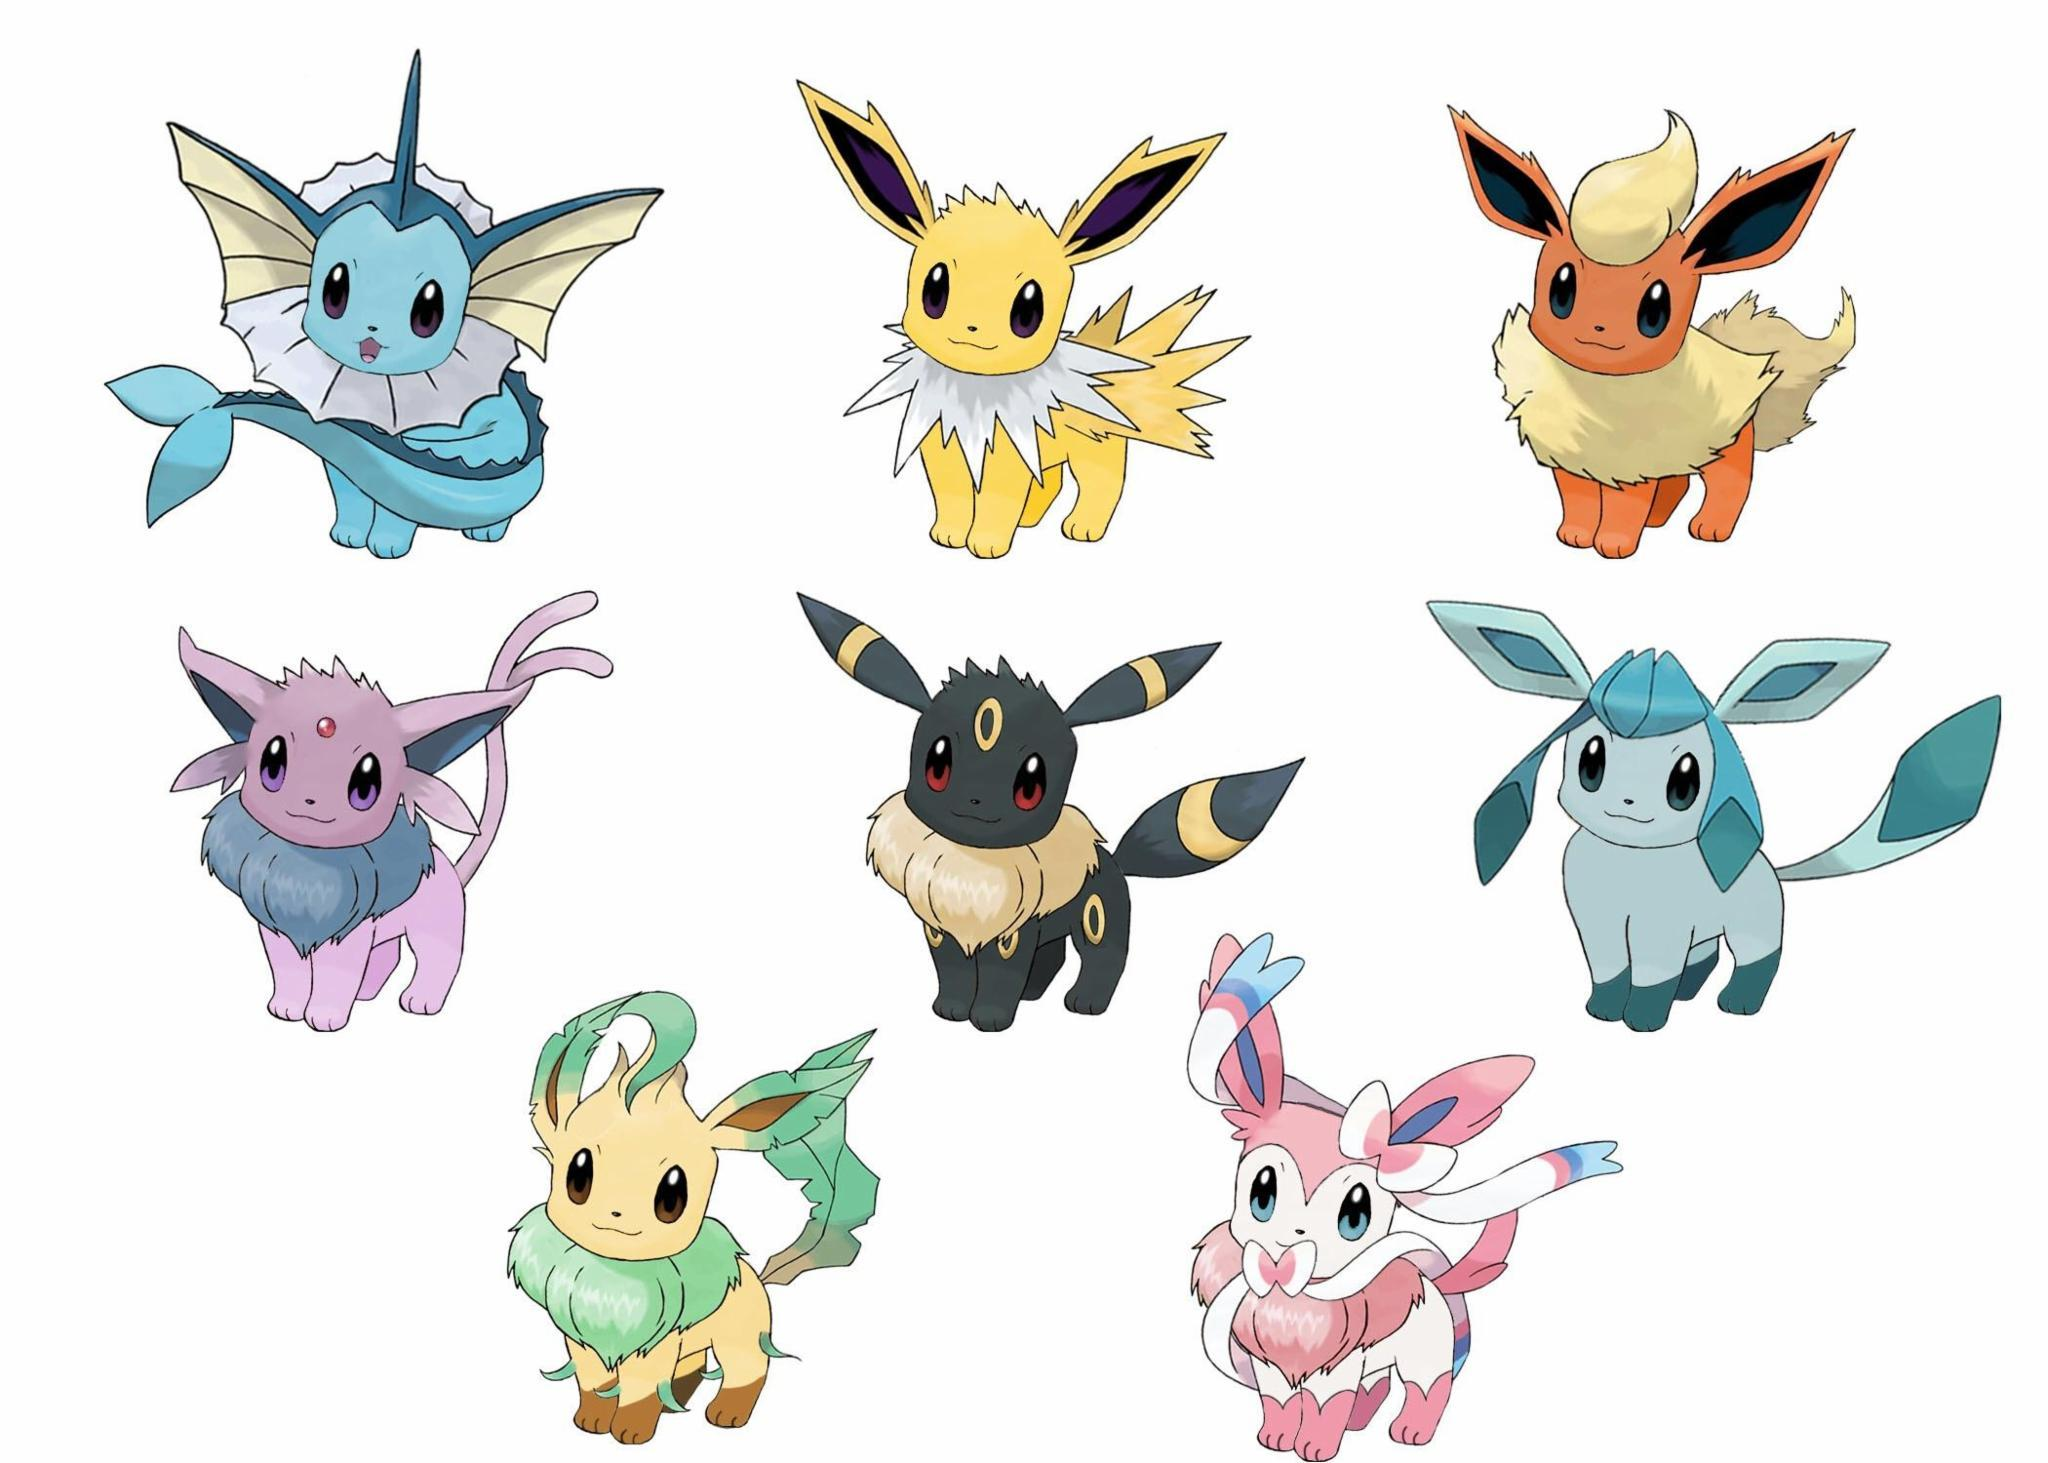 If a new eeveelution were to be introduced in an upcoming pokemon title, what type would you want it to be?